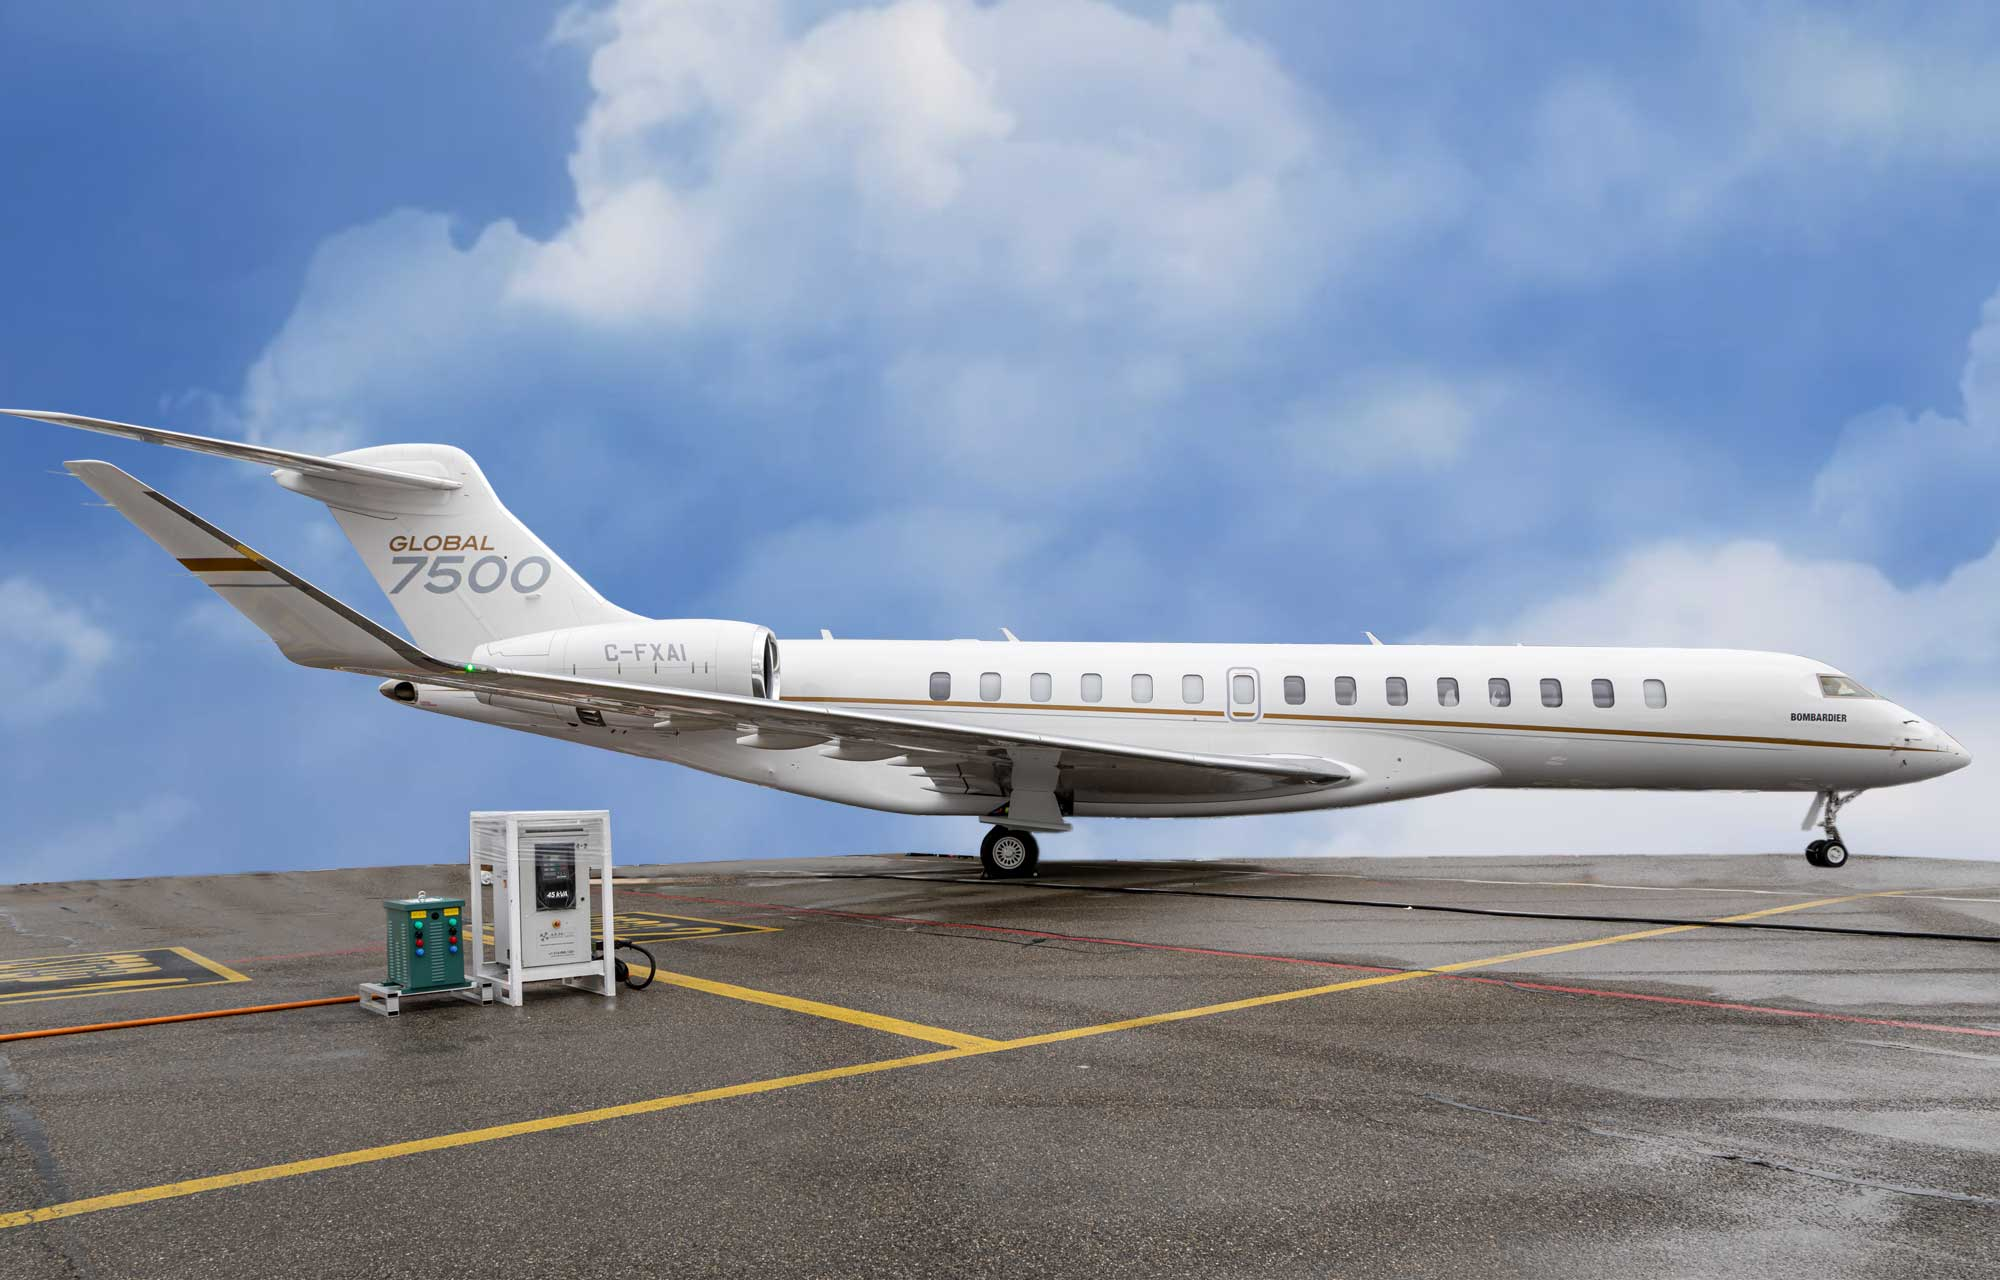 Related model: Bombardier Global 7500